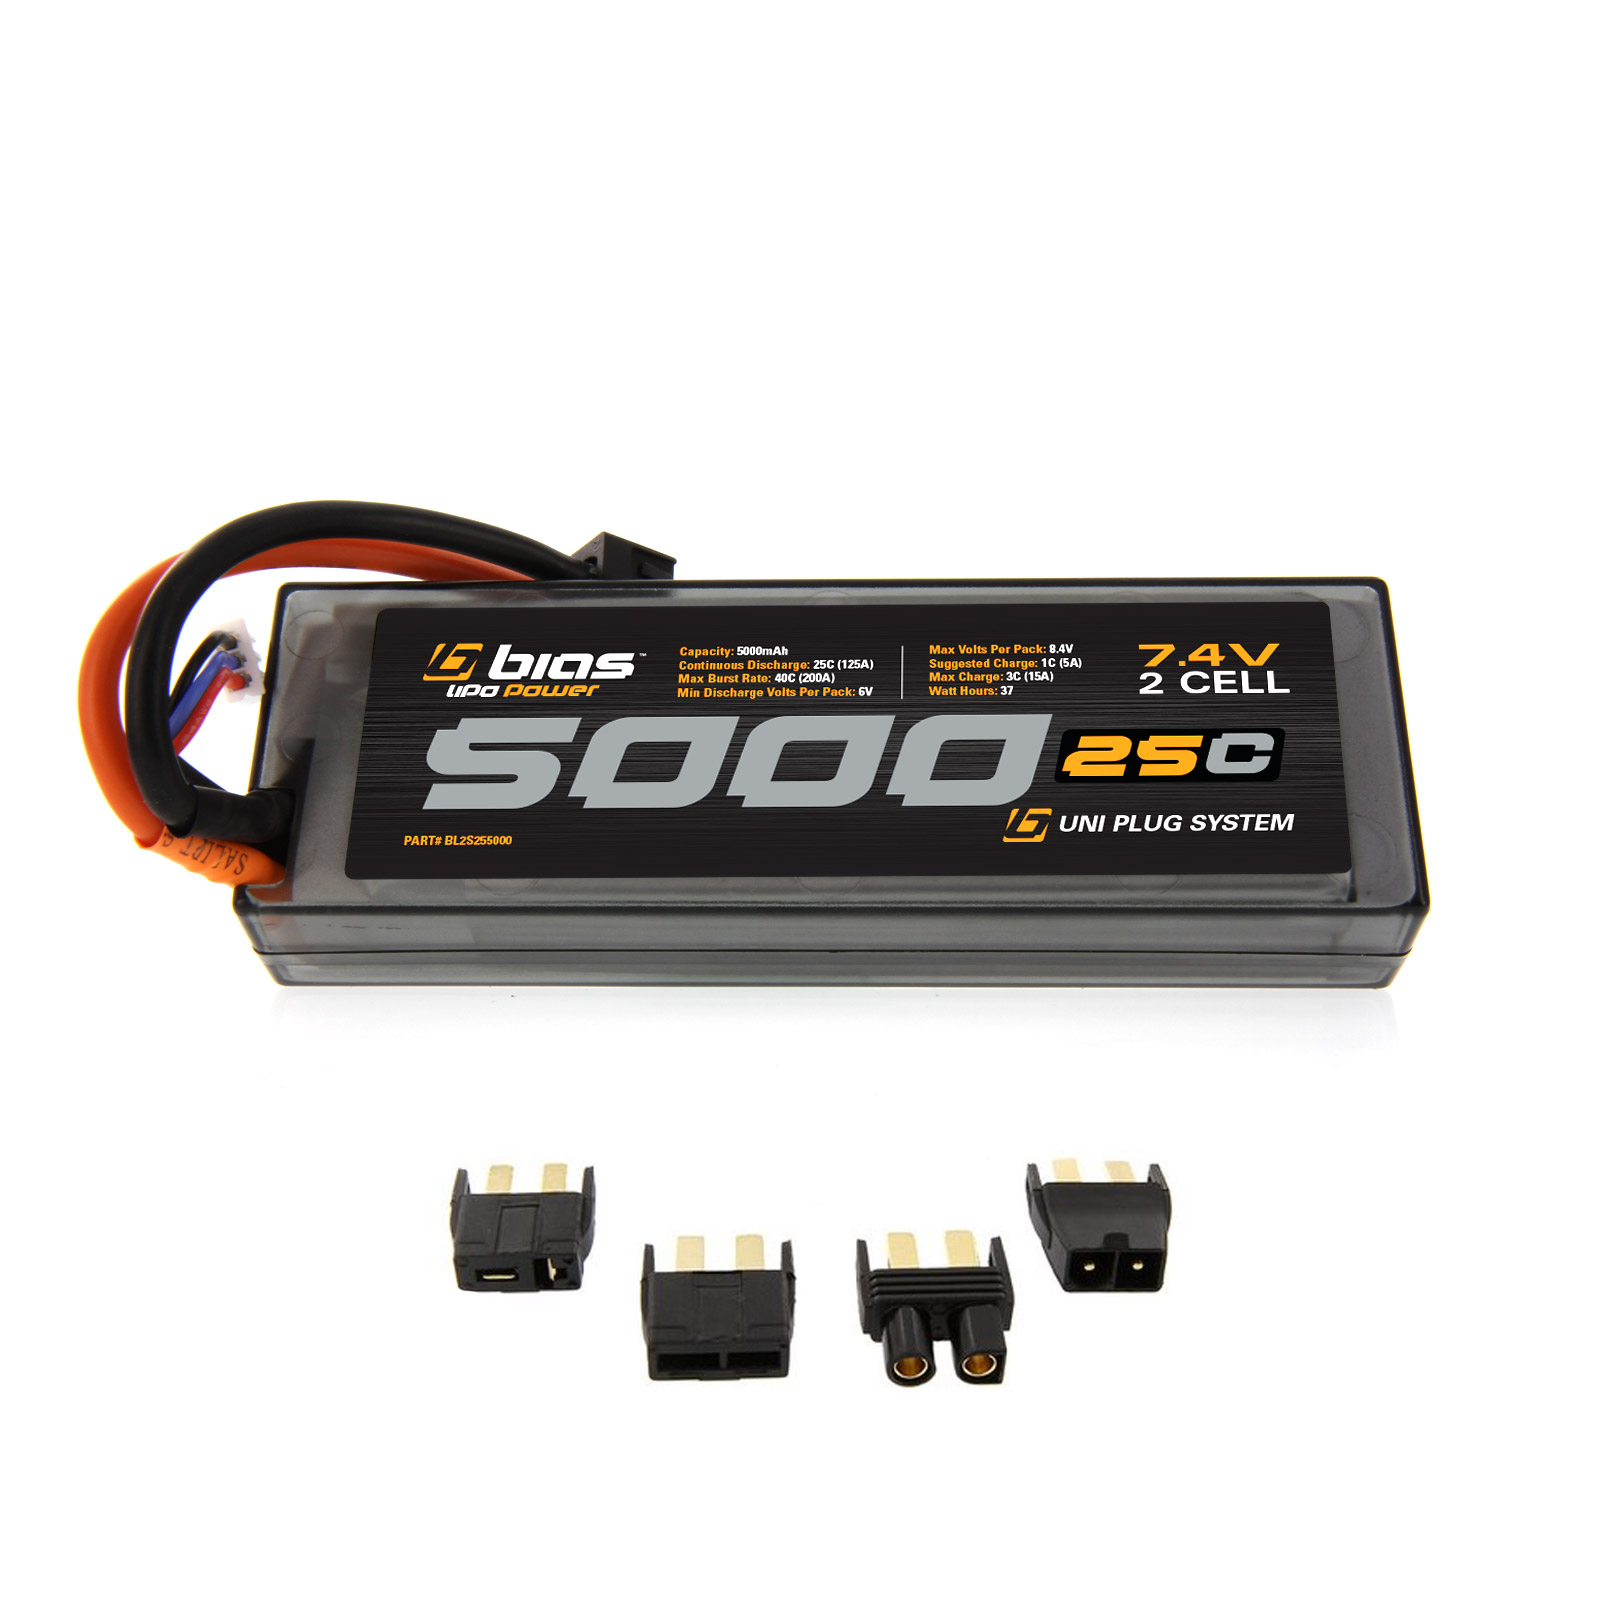 Bias LiPo Battery for Traxxas E-Maxx 25C 2S 5000mAh 7.4V LiPo Hard Case (EC3/Deans/Traxxas/Tamiya Plug) for RC Car, Truck, Buggy, Boat, Heli and Drone